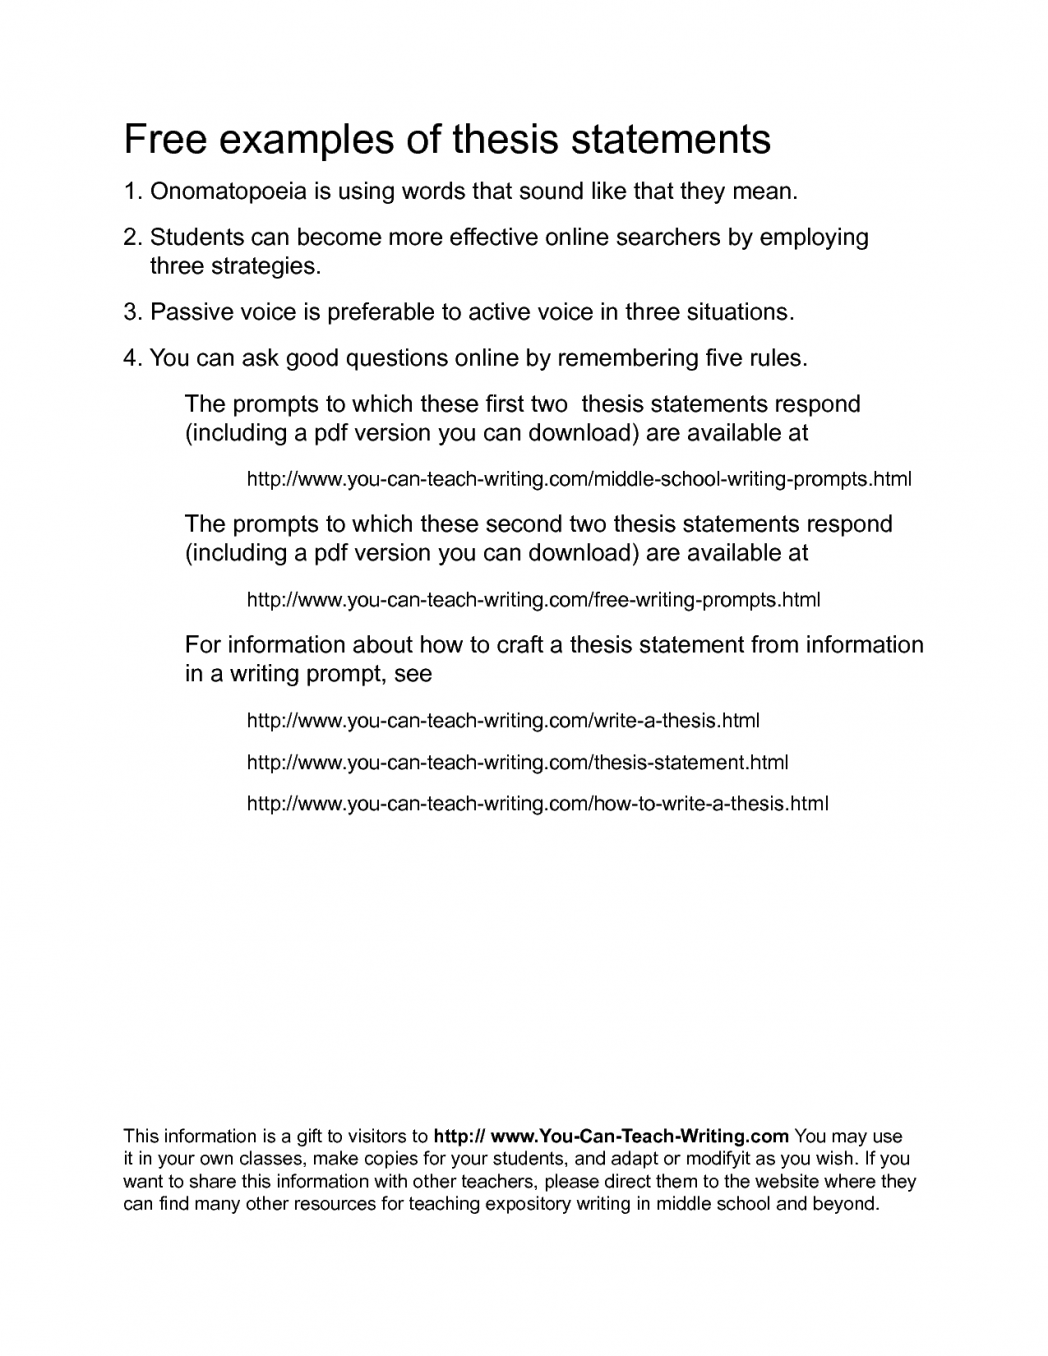 007 Persuasiveay Thesis Good Topics For Middle School About Purpose Of Statement Template Wwe Speech Uniforms Issues Education Rules Uniform Argumentative High 1048x1356 Exceptional Persuasive Essay Examples Worksheet Full